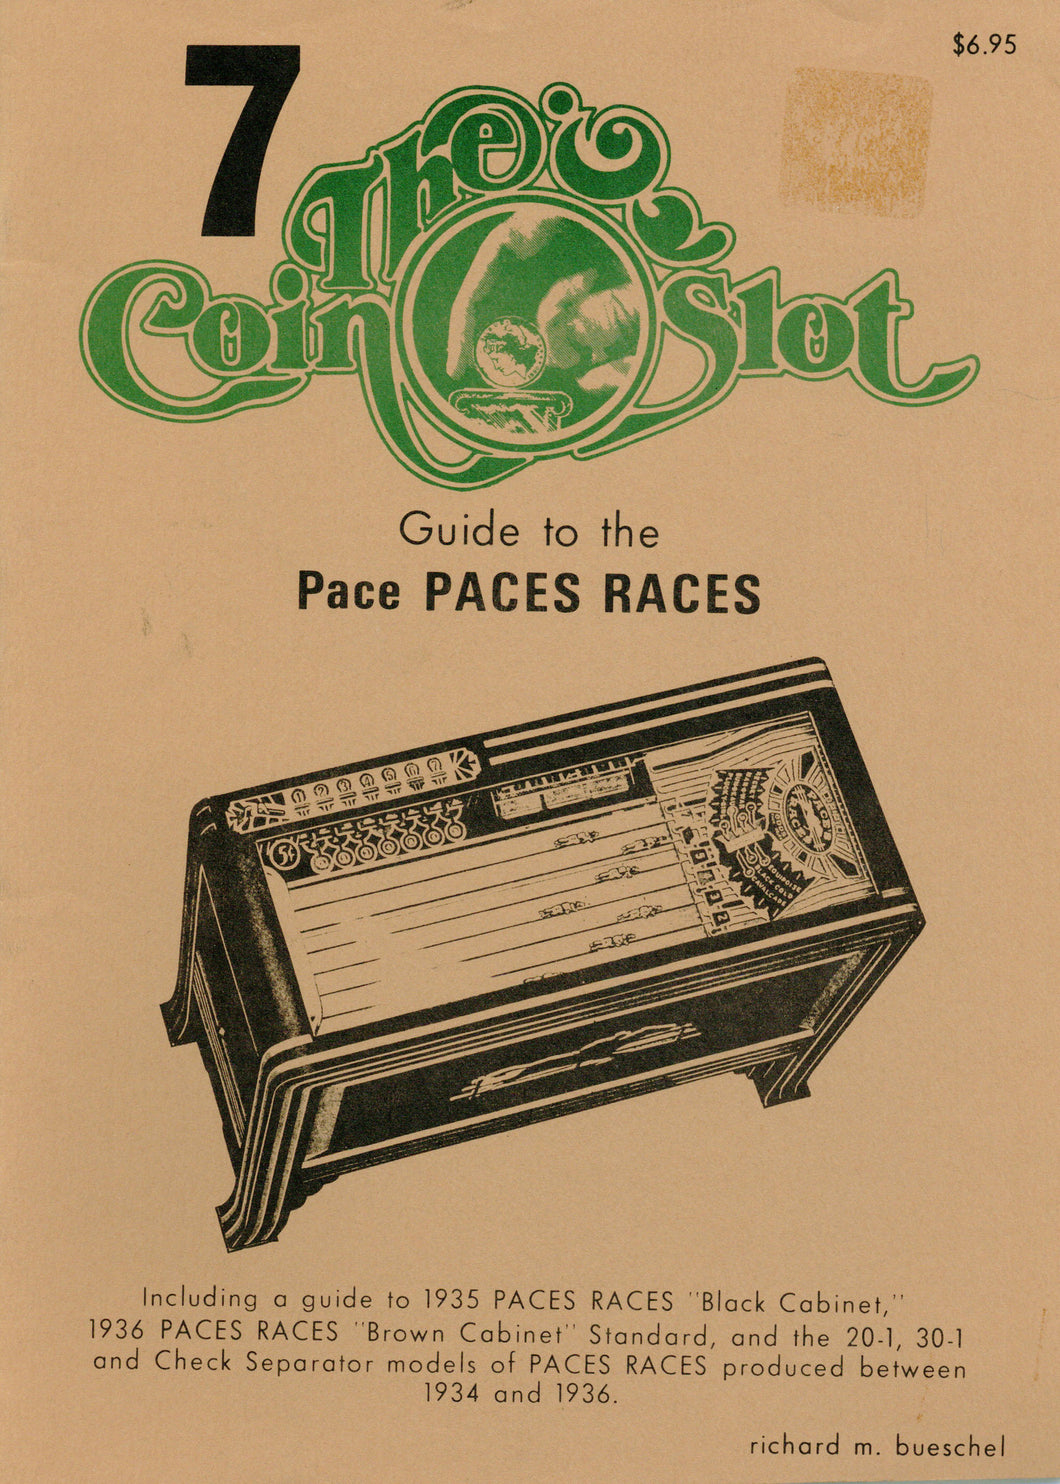 Coin Slot # 7. Guide to the Paces Races